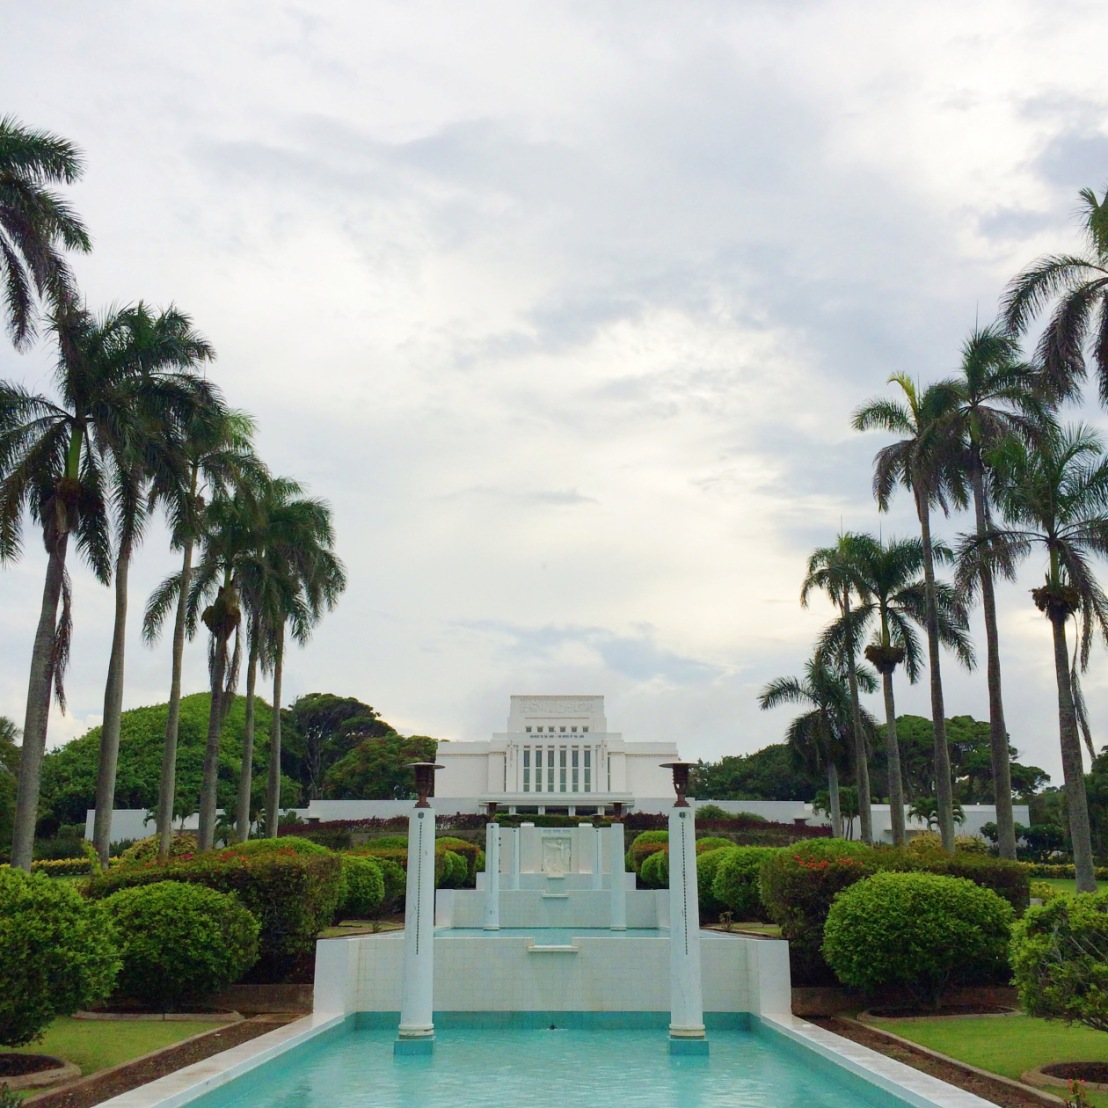 LAIE HAWAII LDS TEMPLE //VIDEO